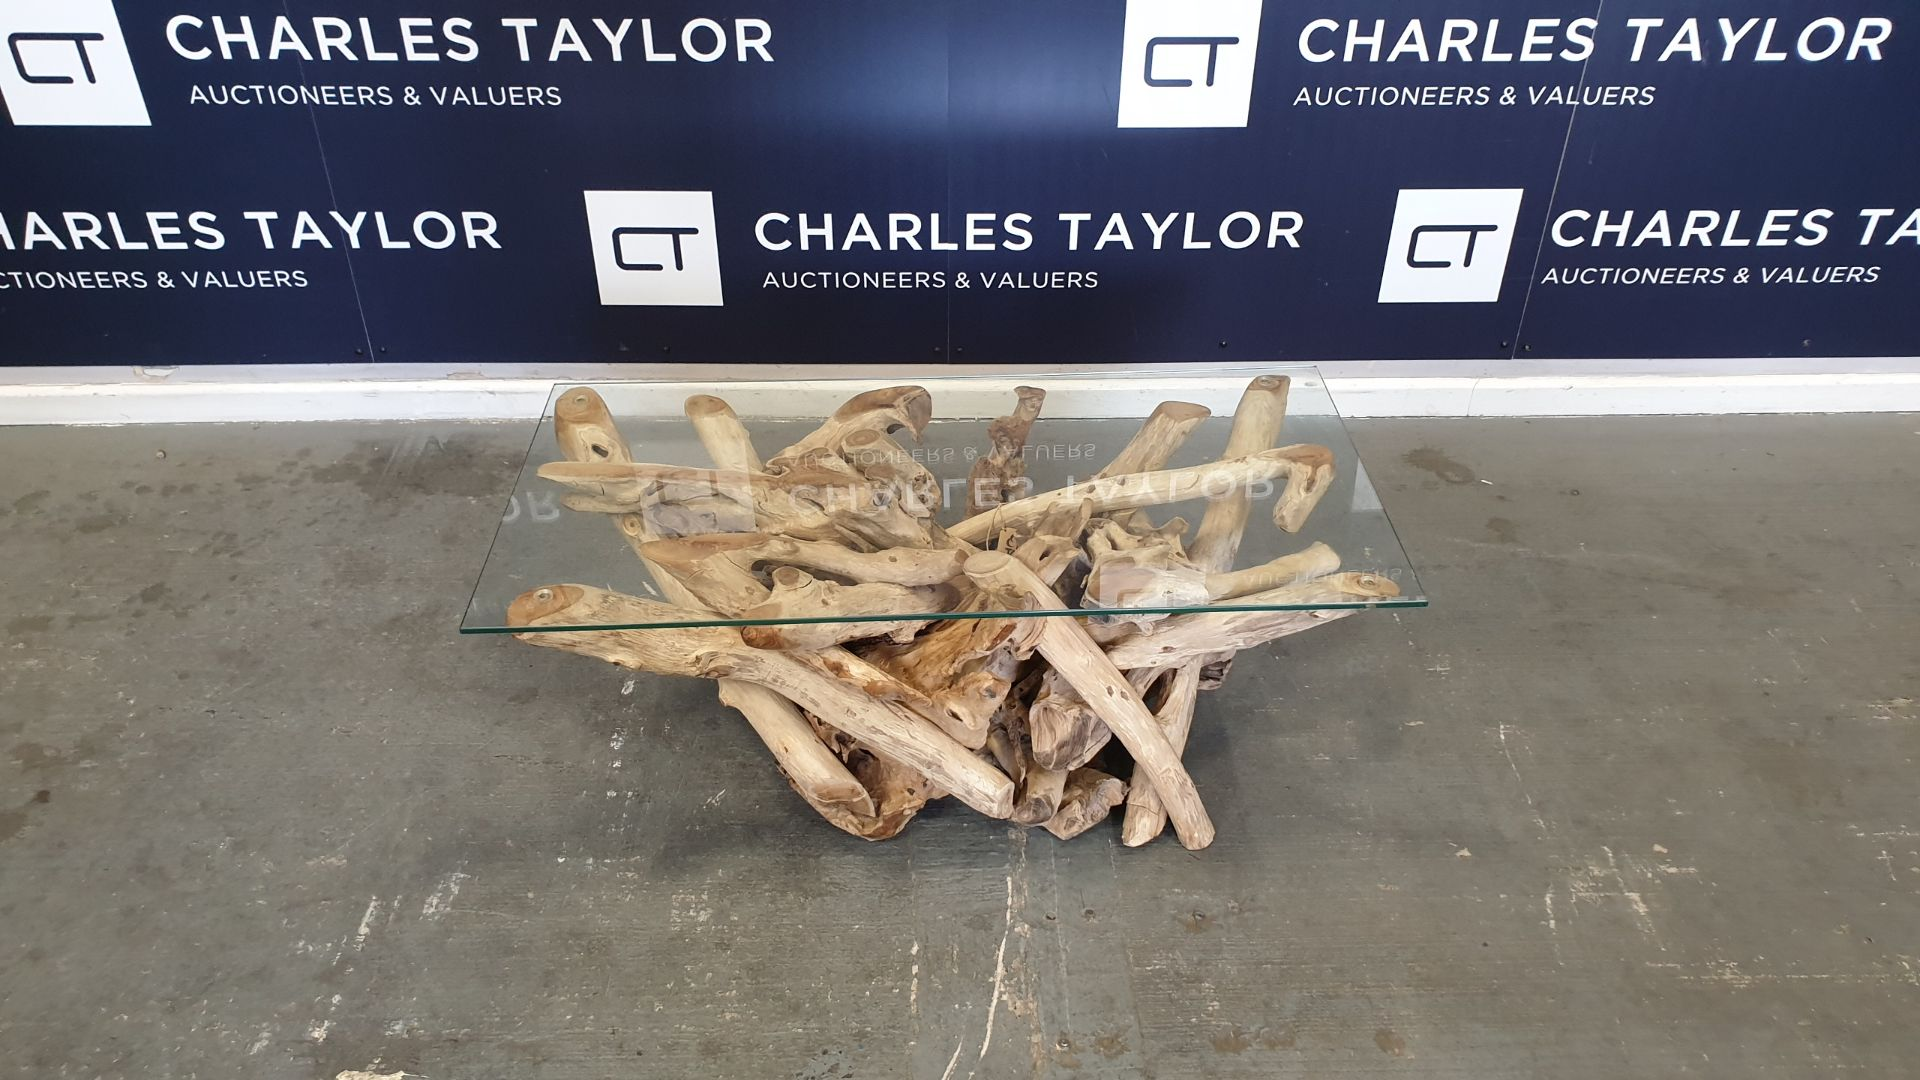 Lot 11 - BRAND NEW SOLID TEAK ROOT WOODEN RECTA COFFEE TABLE WITH 8mm GLASS 150 X 50 X 40cm RRP £480